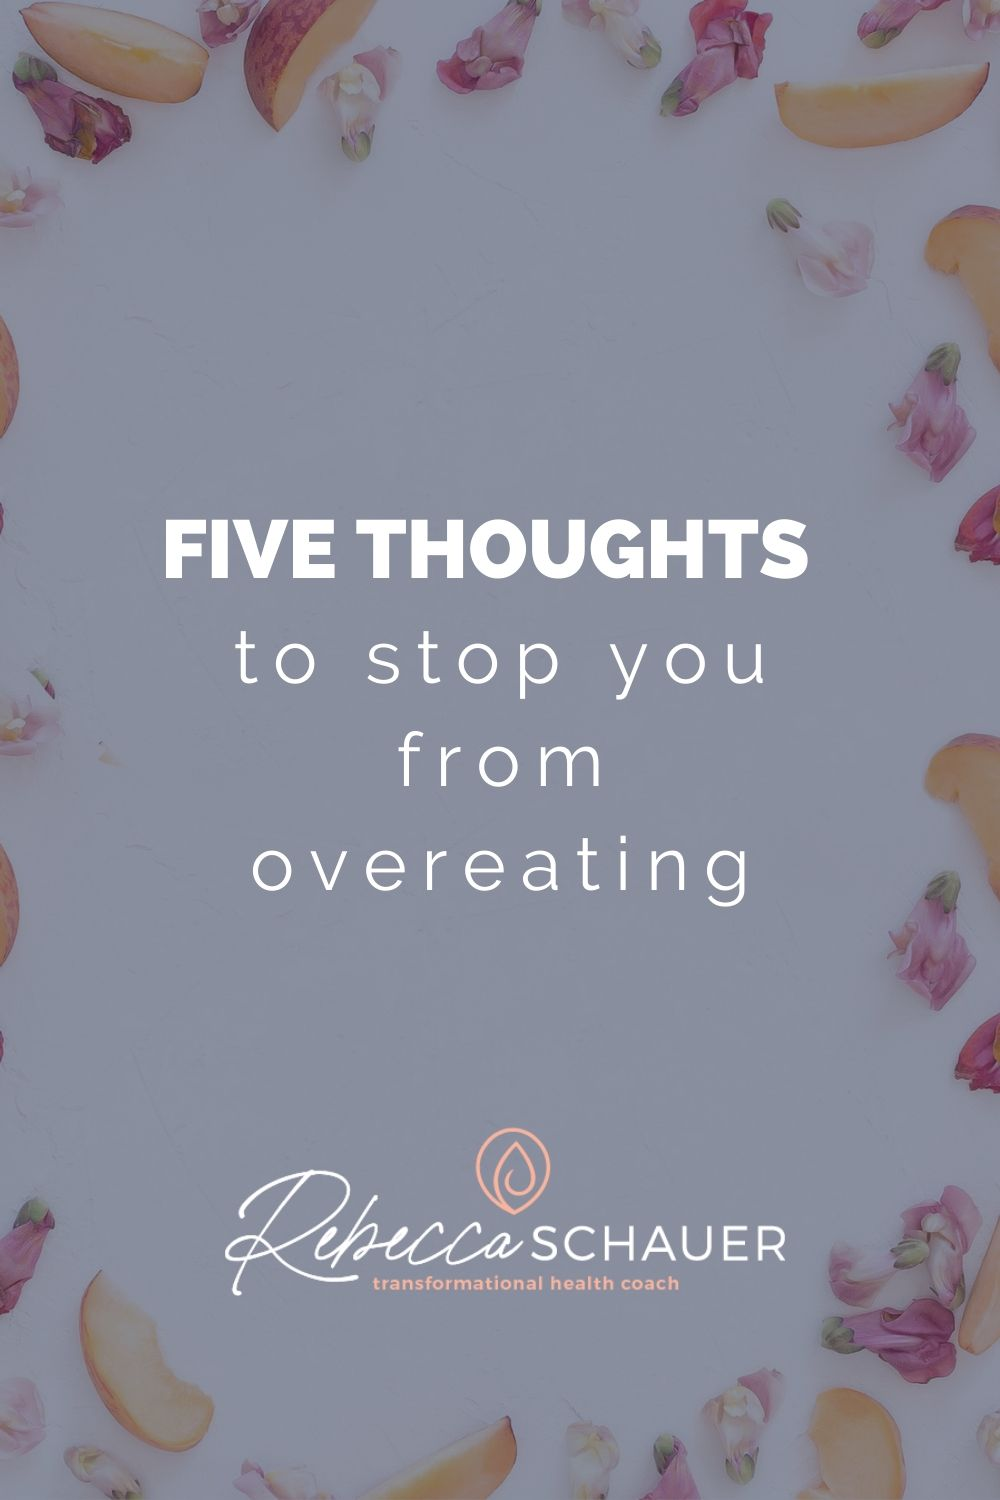 These five reflections before eating are a way to foster mindful eating. When we practice mindful eating and being present with our food, we decrease the likelihood of automatic overeating. Rebecca Schauer, RDN; Find Freedom with Food